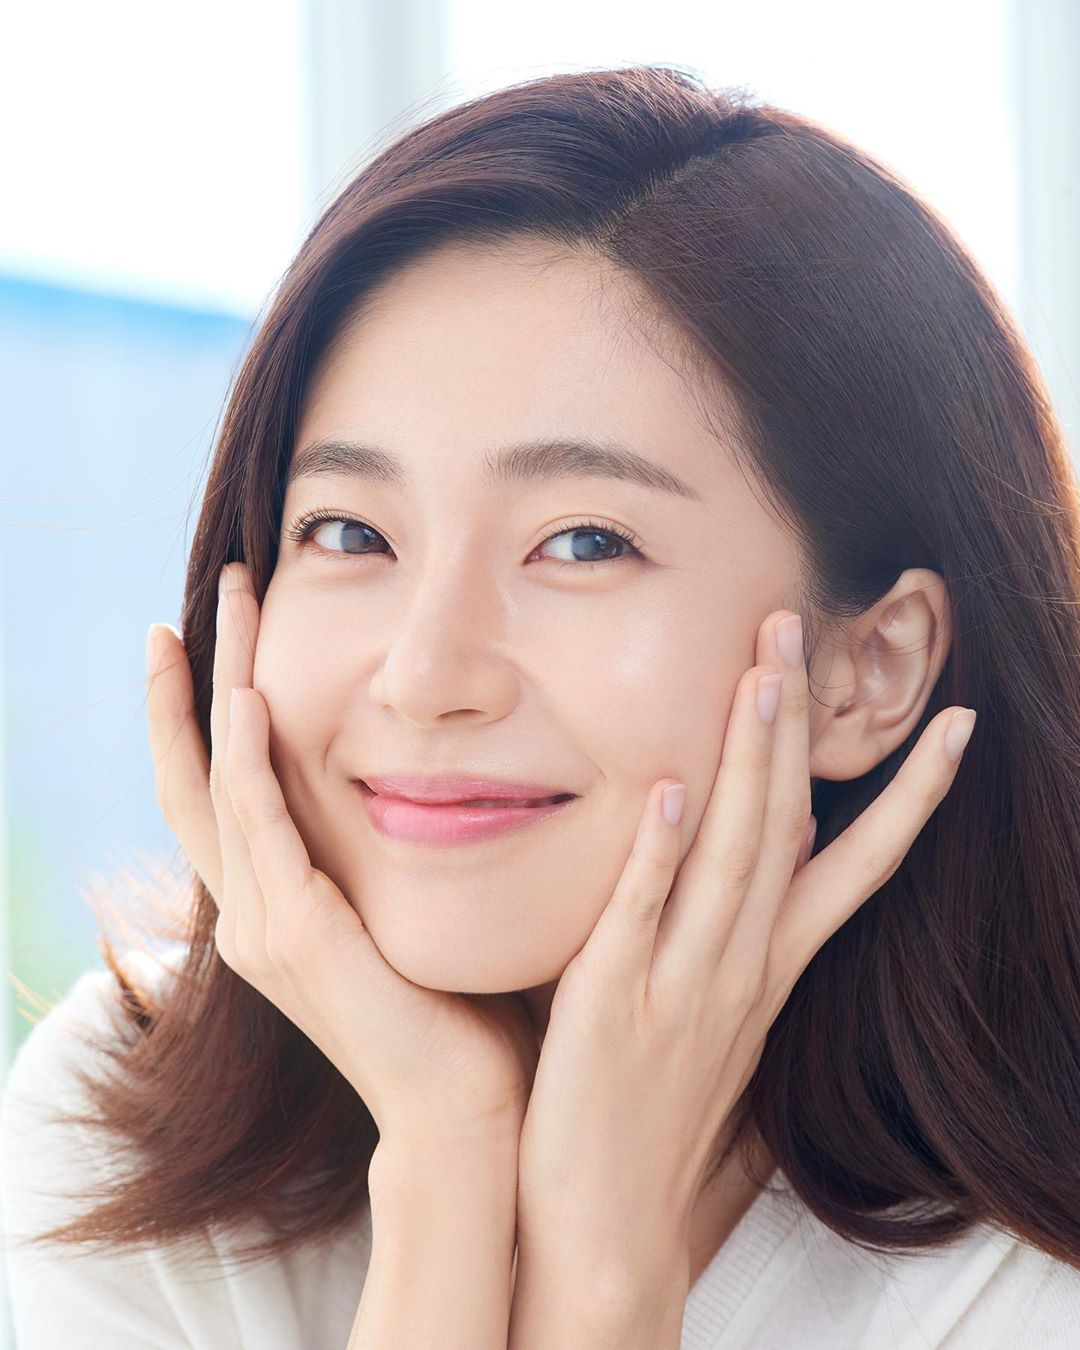 Baek Jin hee south korean actress